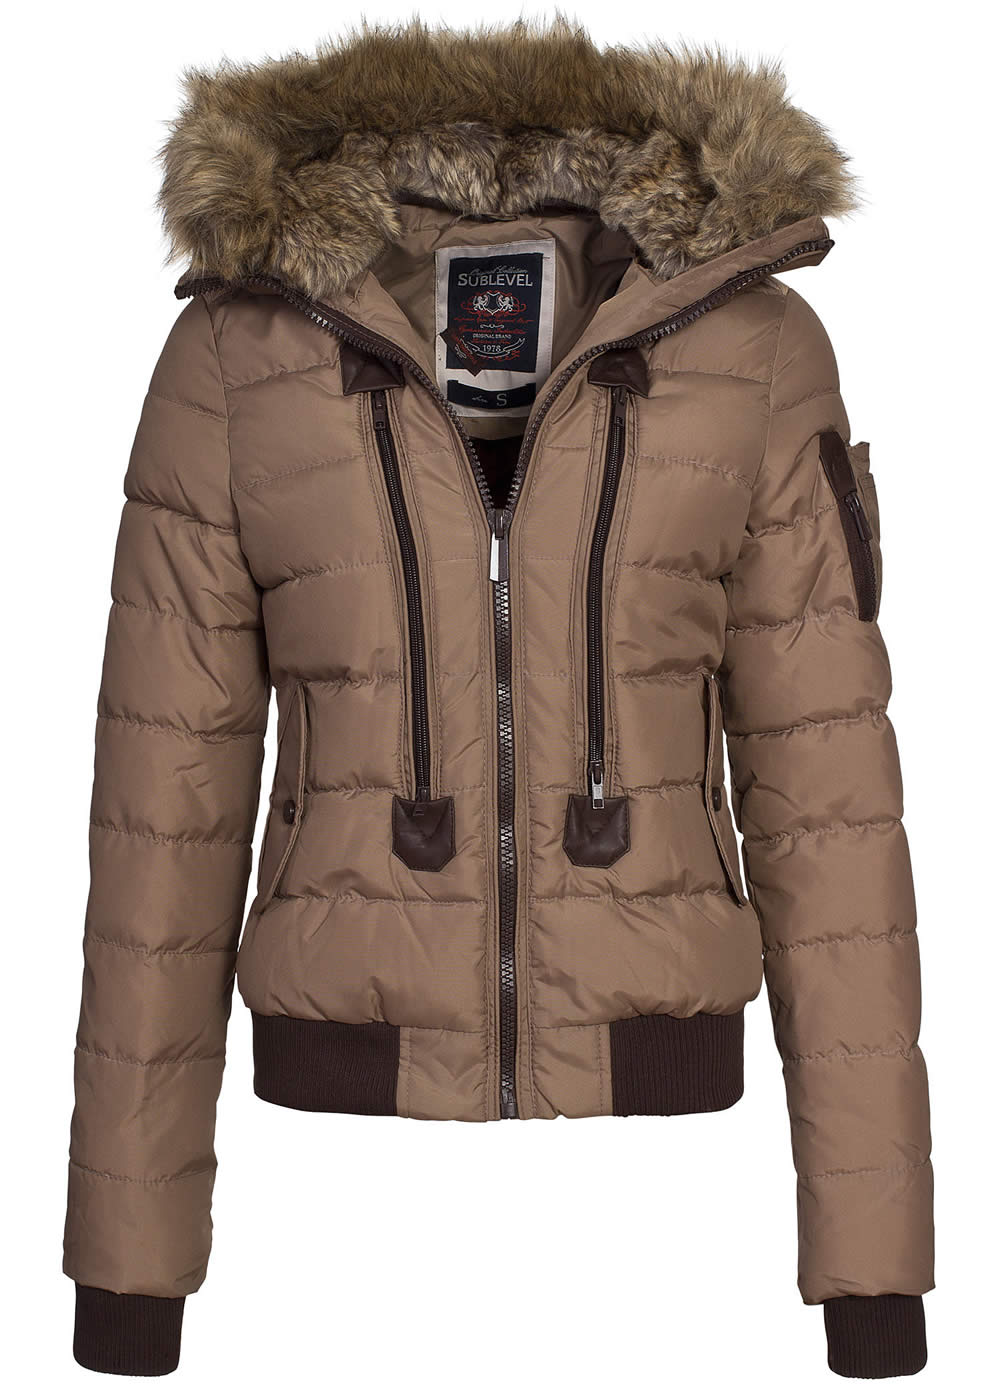 Winter damen jacke mit fell